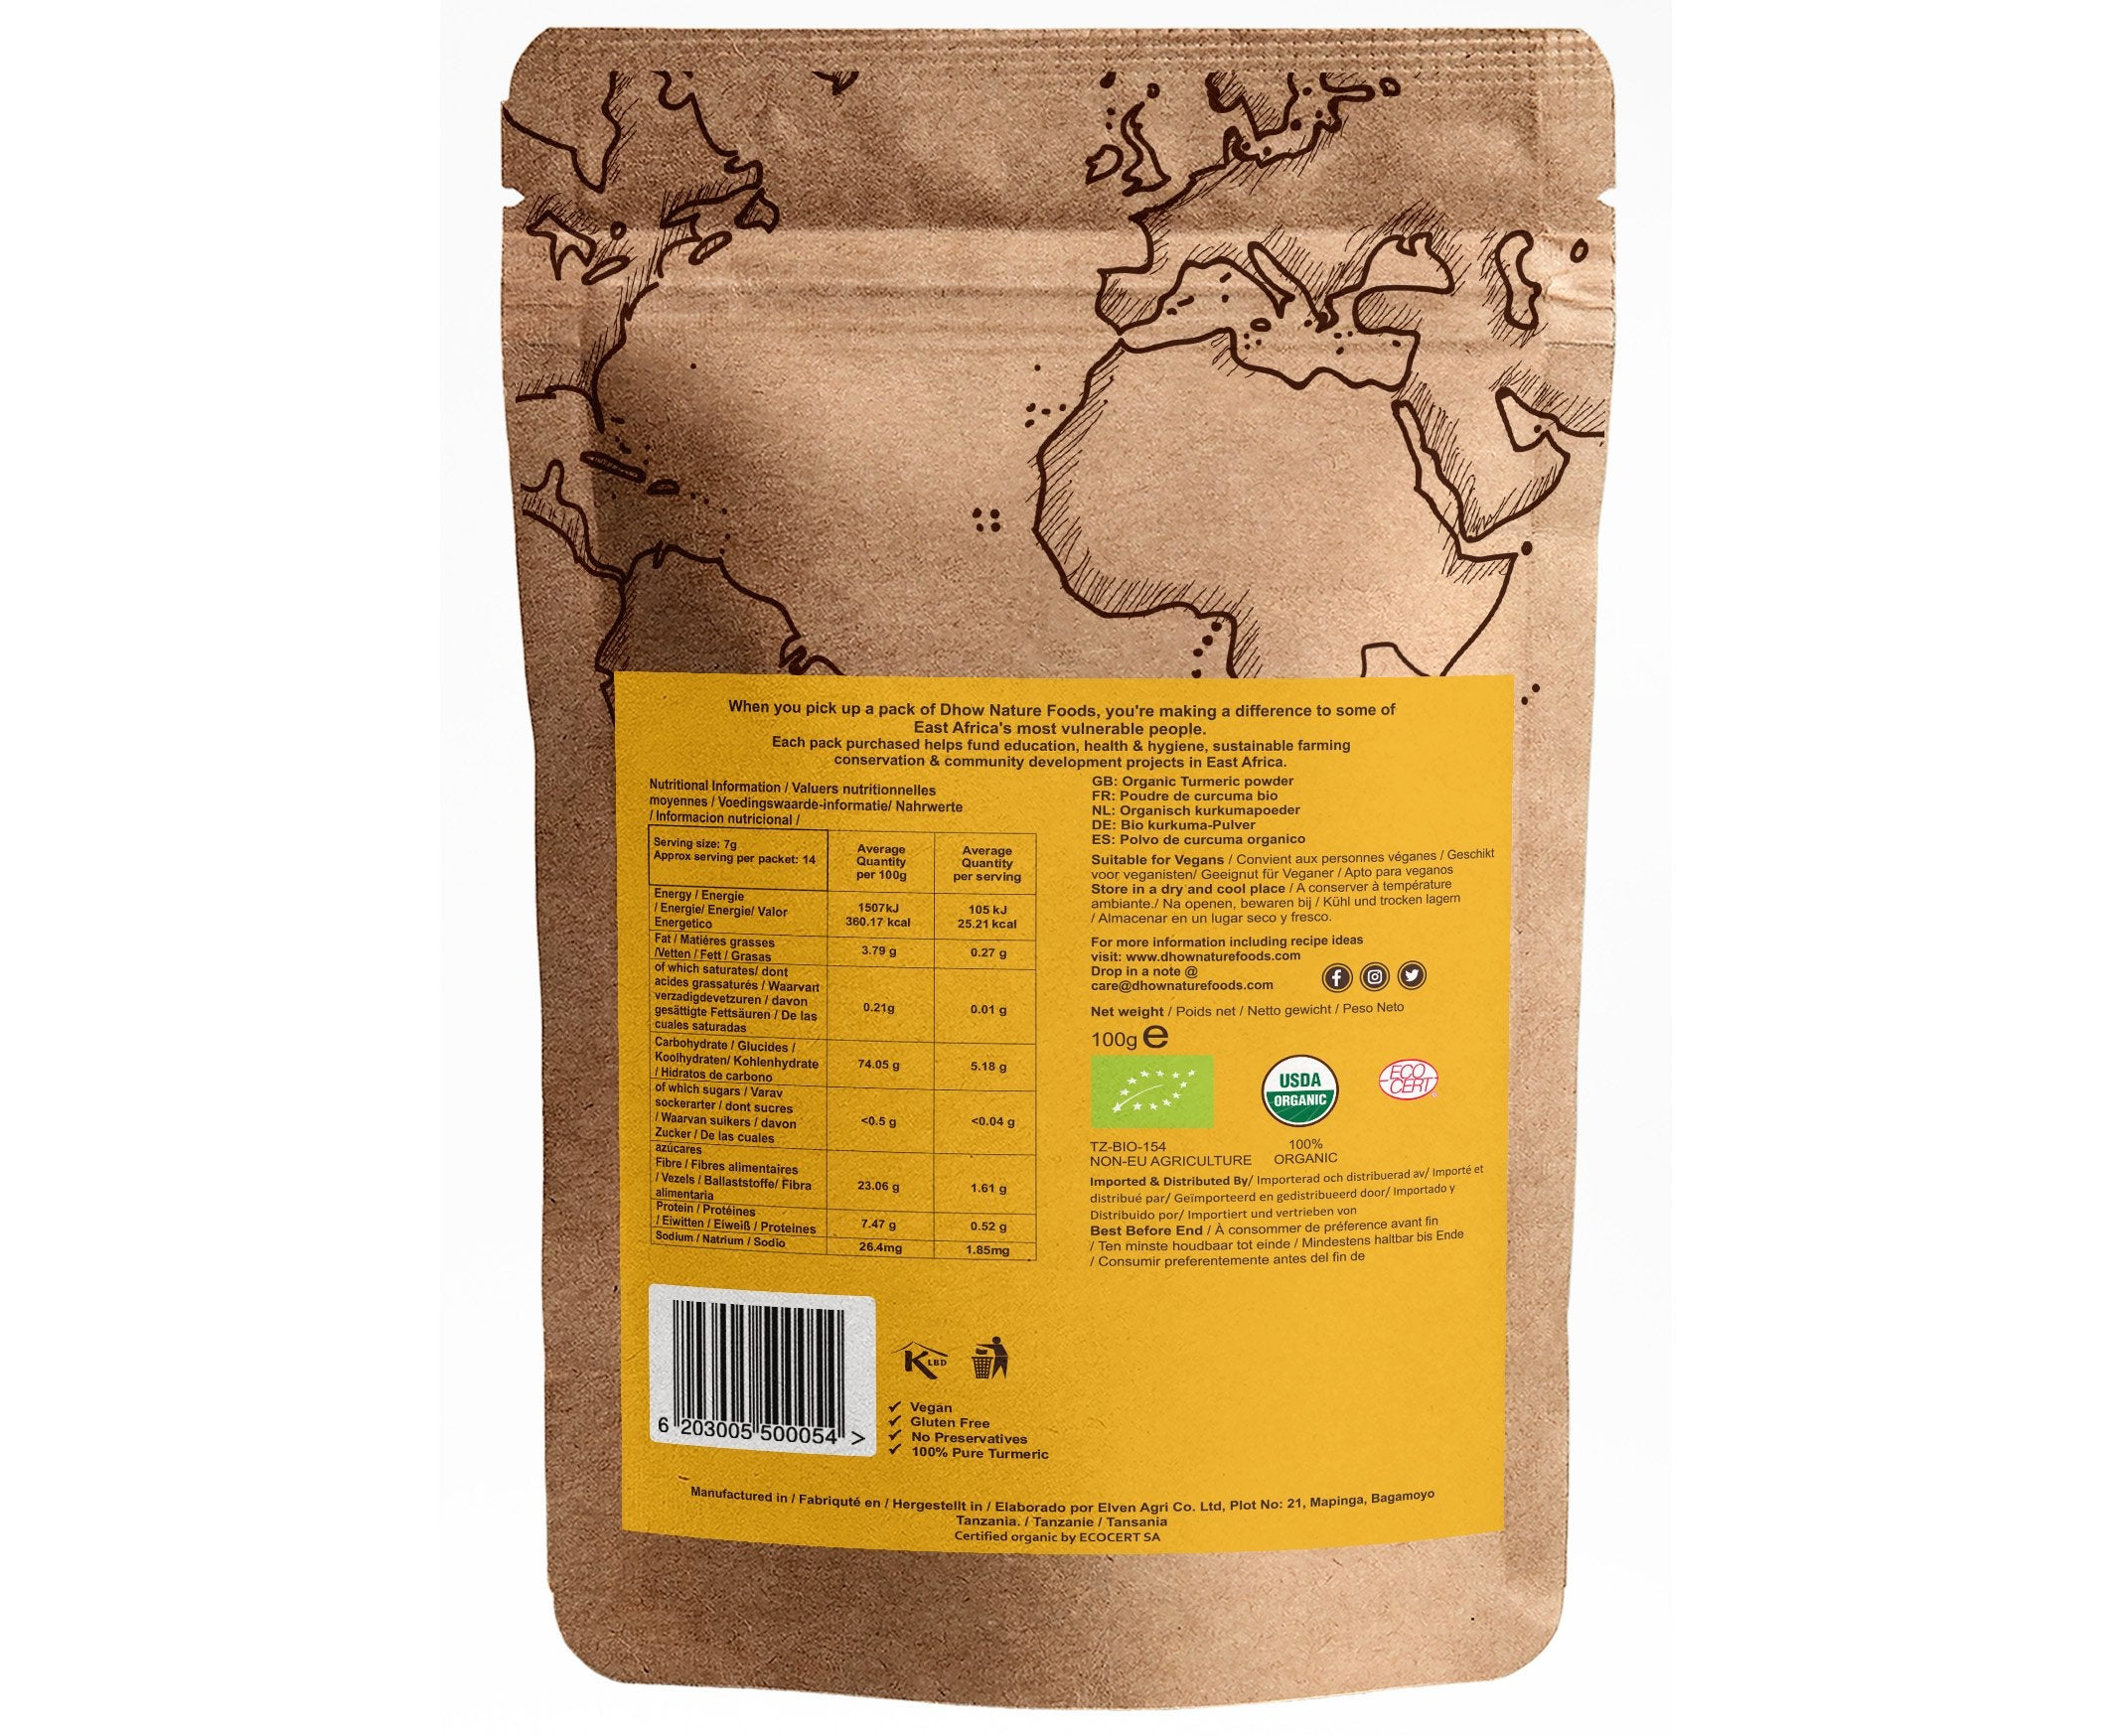 Organic Raw High Curcumin Turmeric Powder (100g) - Dhow Nature Foods (Australia)